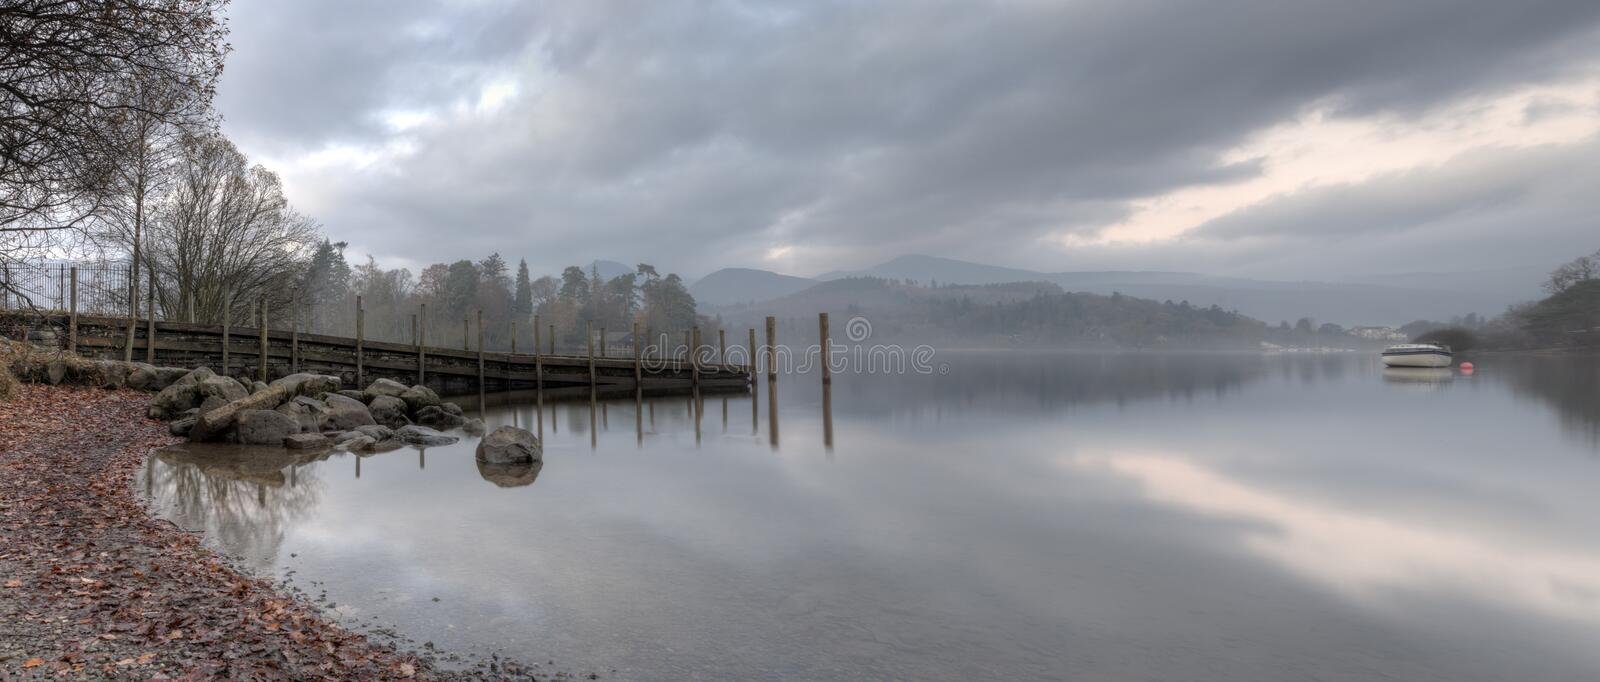 Early Morning Derwentwater. Early monring derwentwater sunrise in the English lake district stock photo